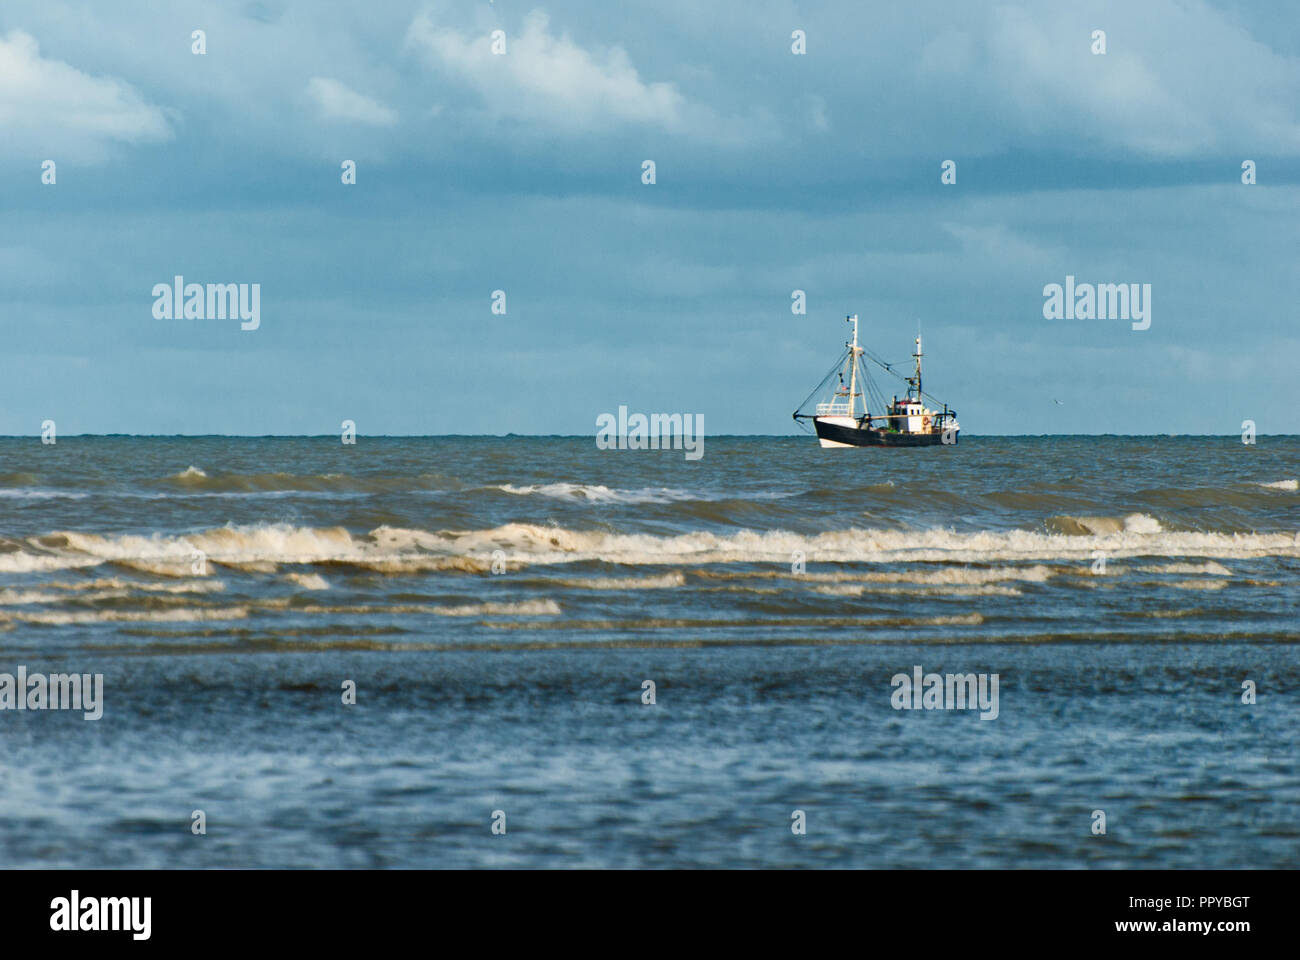 fishing boat fishing at evening near the coast in autumn - Stock Image